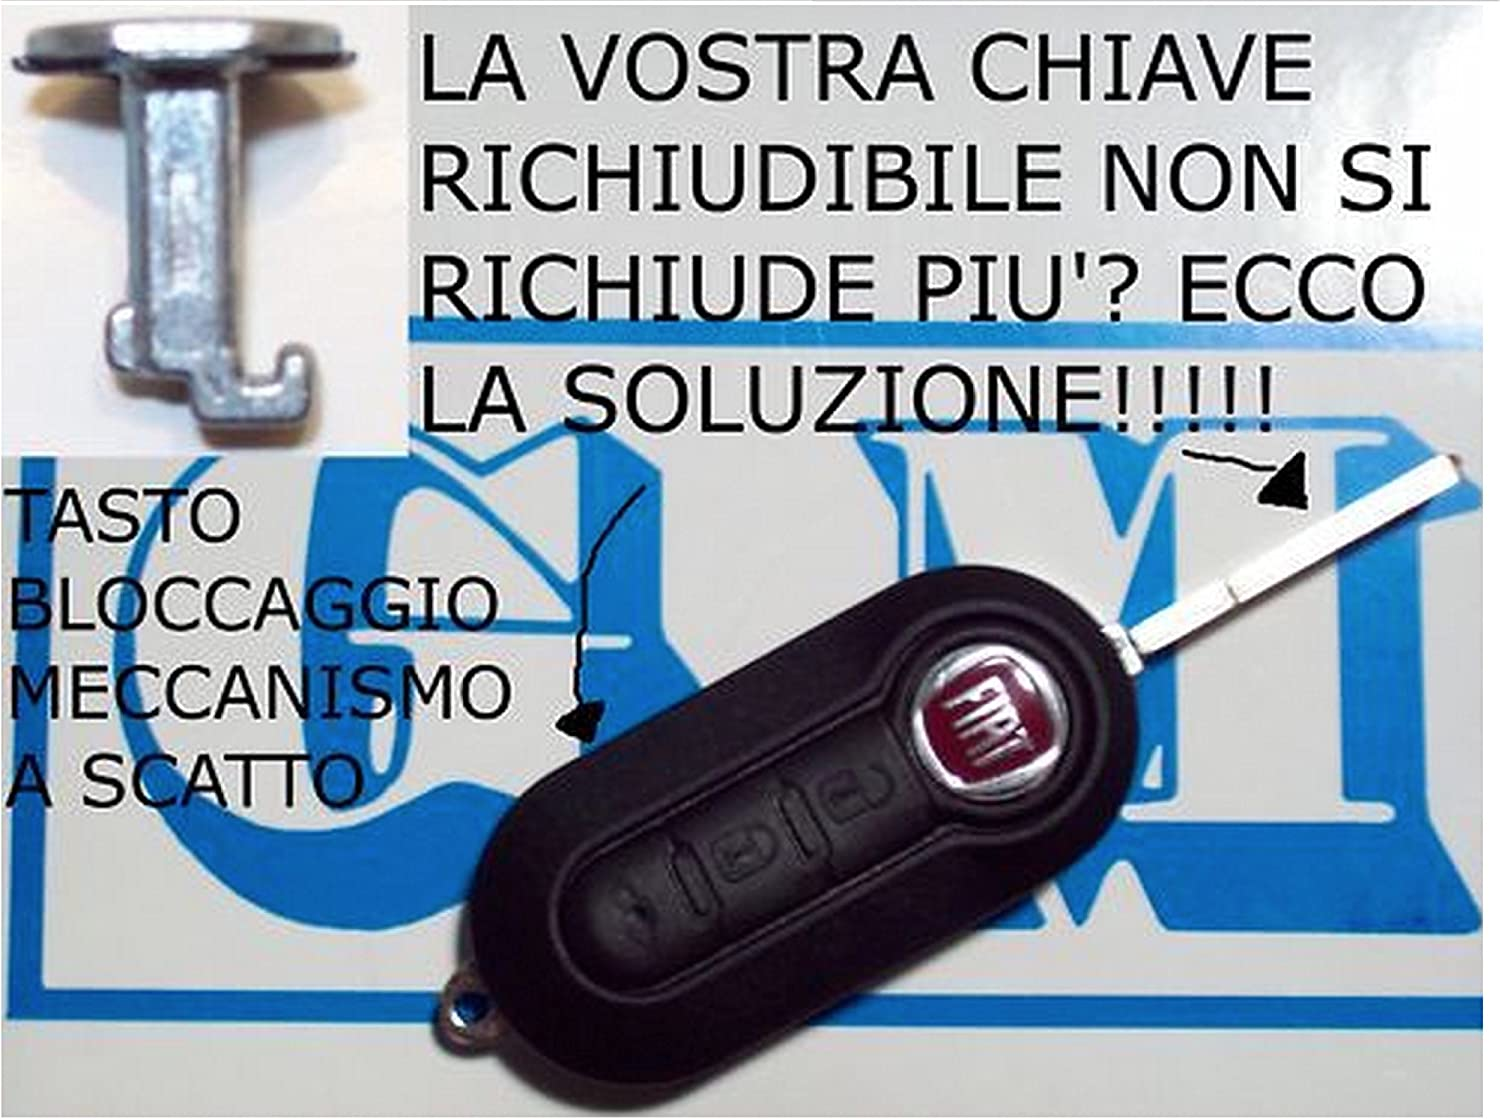 Production 1500 Replacement Key Cover with Buttons for Fiat//Lancia//Peugeot//Vauxhall Black check photo and compatibility details G.M